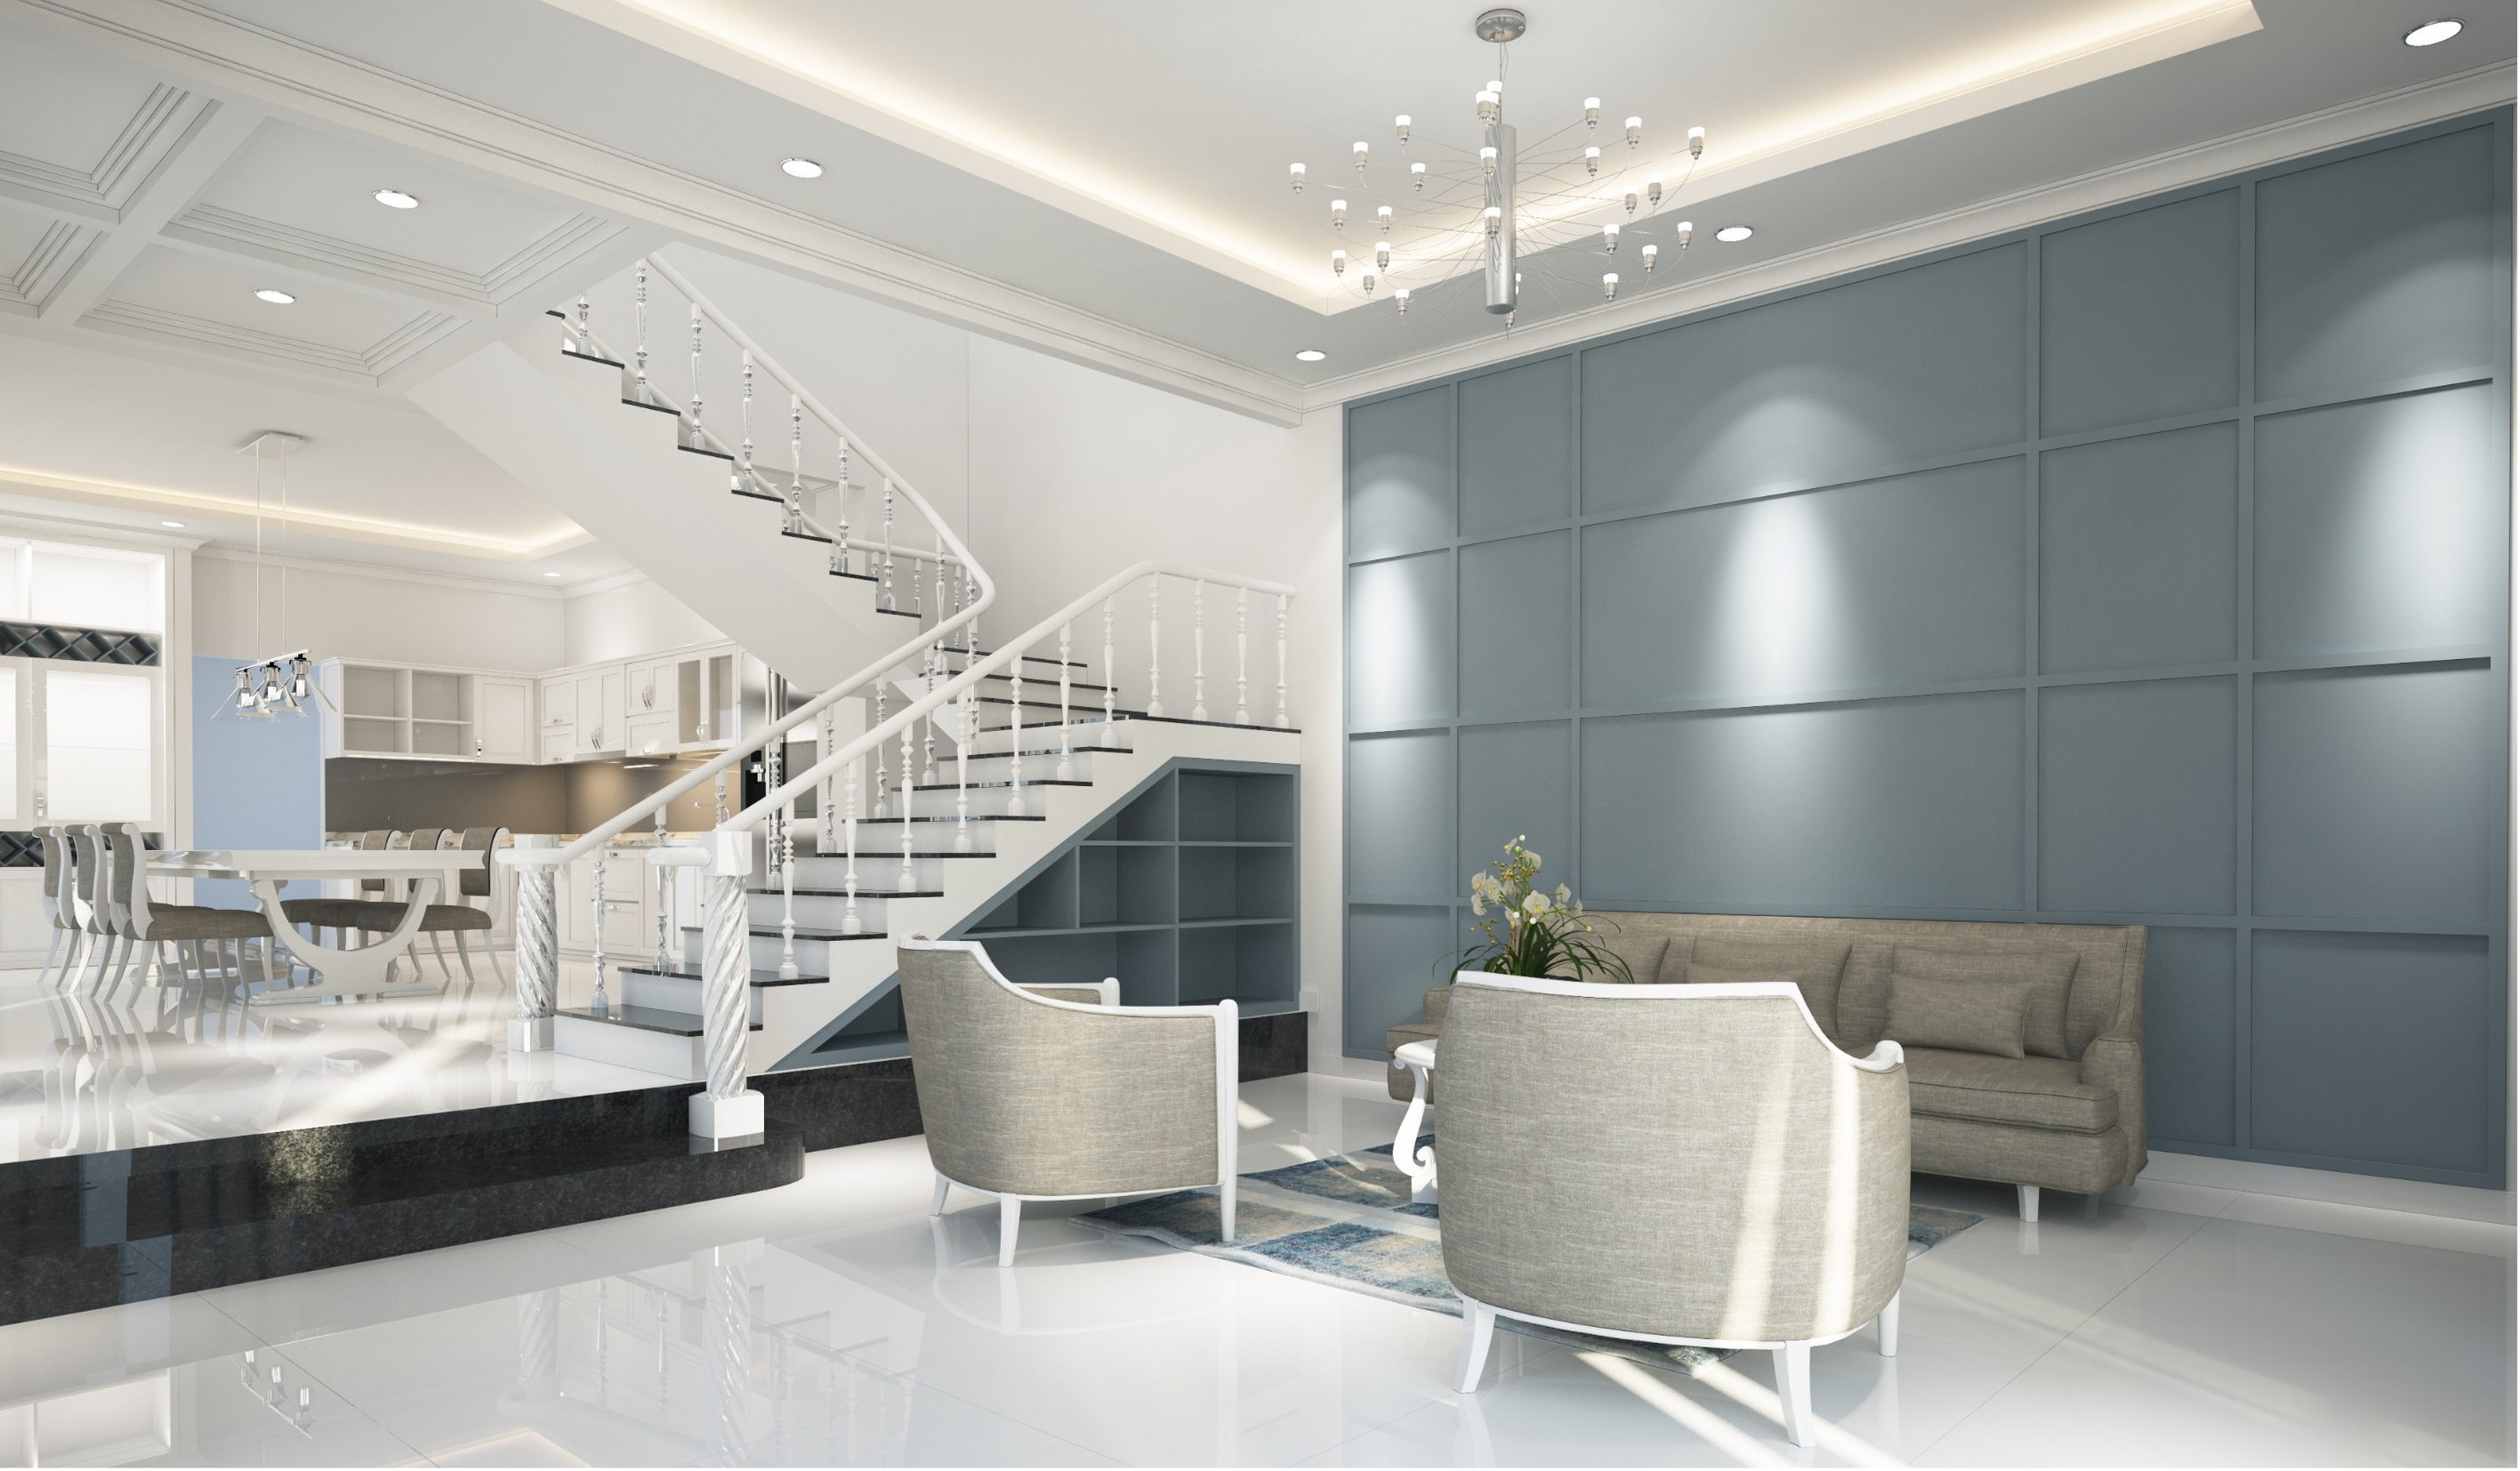 Home Renovation of kitchen and lounge room in a blue grey, steel grey, white and black tones